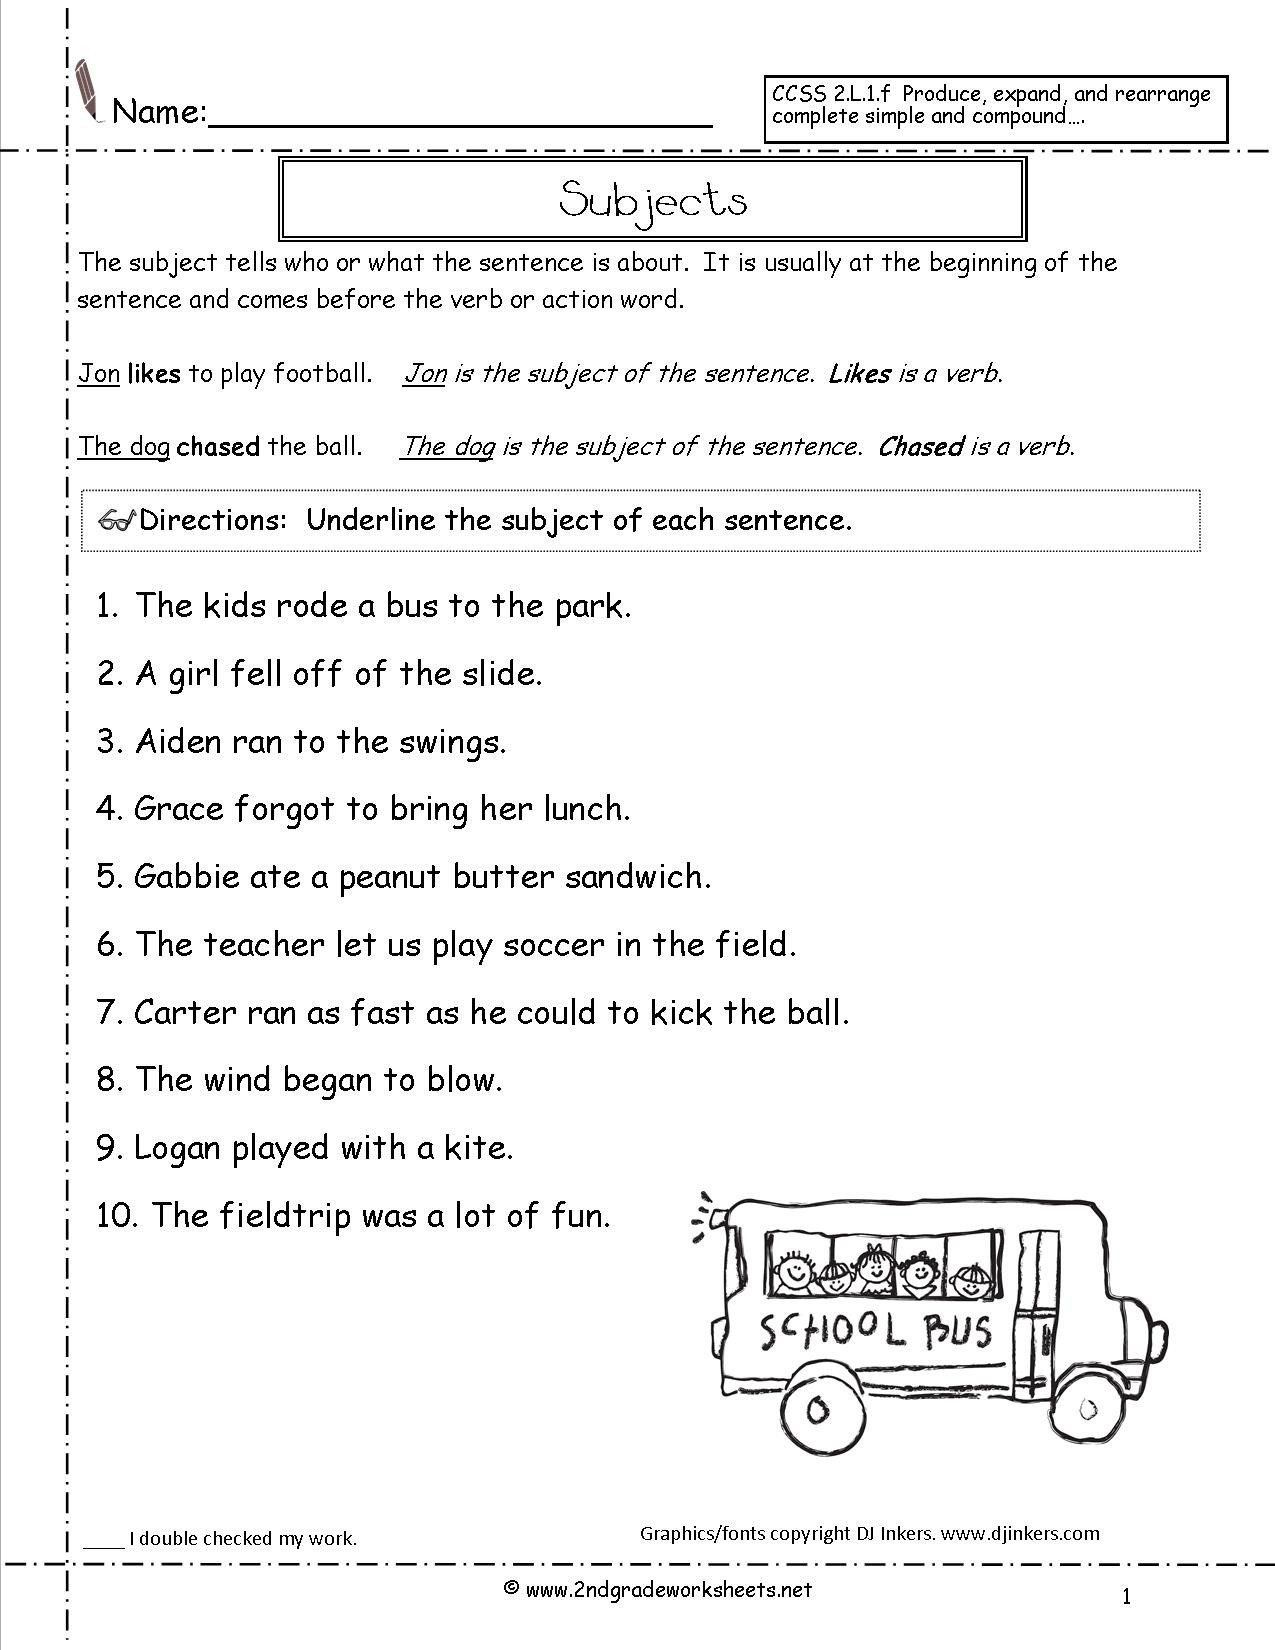 Subject Sentence Worksheets   Printable Worksheets and Activities for  Teachers [ 1650 x 1275 Pixel ]